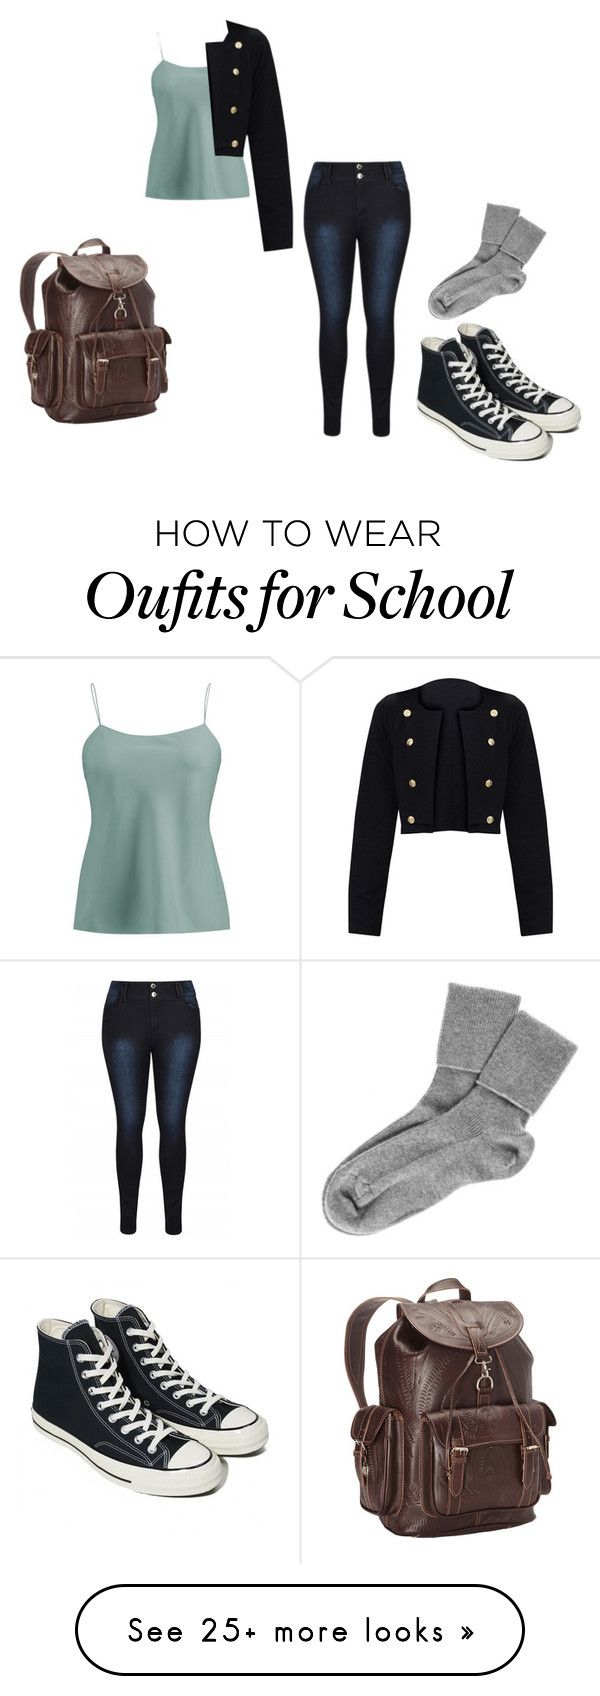 """Finally A Change Of New Clothes"" by pokeasaurousrex on Polyvore featuring Ralph Lauren Collection, Ropin West, Converse and Black"